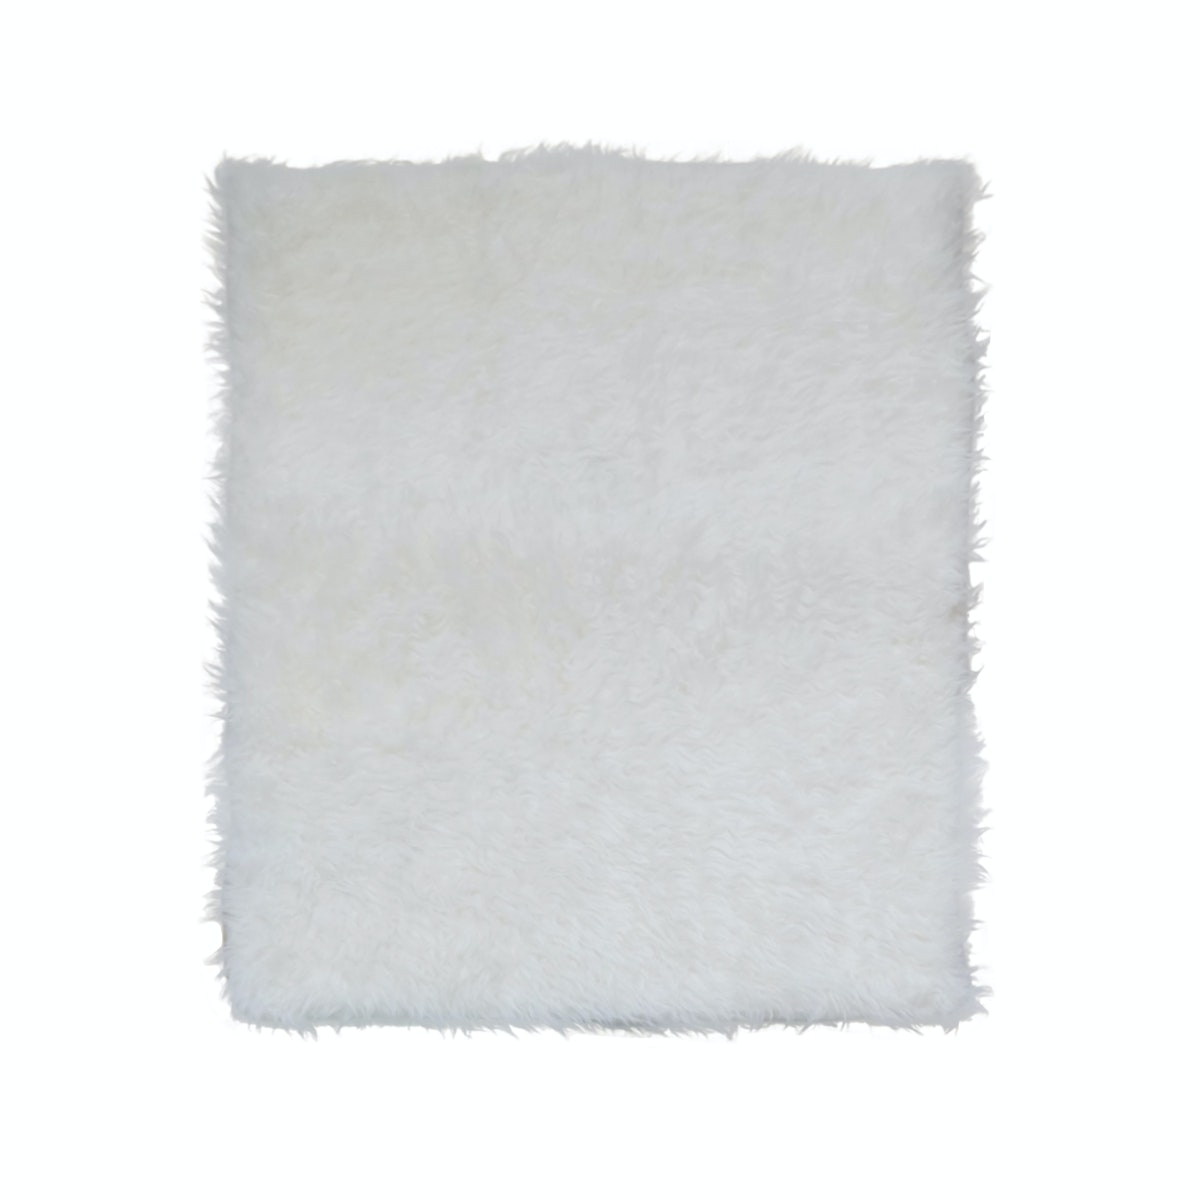 Eclectic Home Decor Fuzzyfur Rug with antislip base & removable foam insert